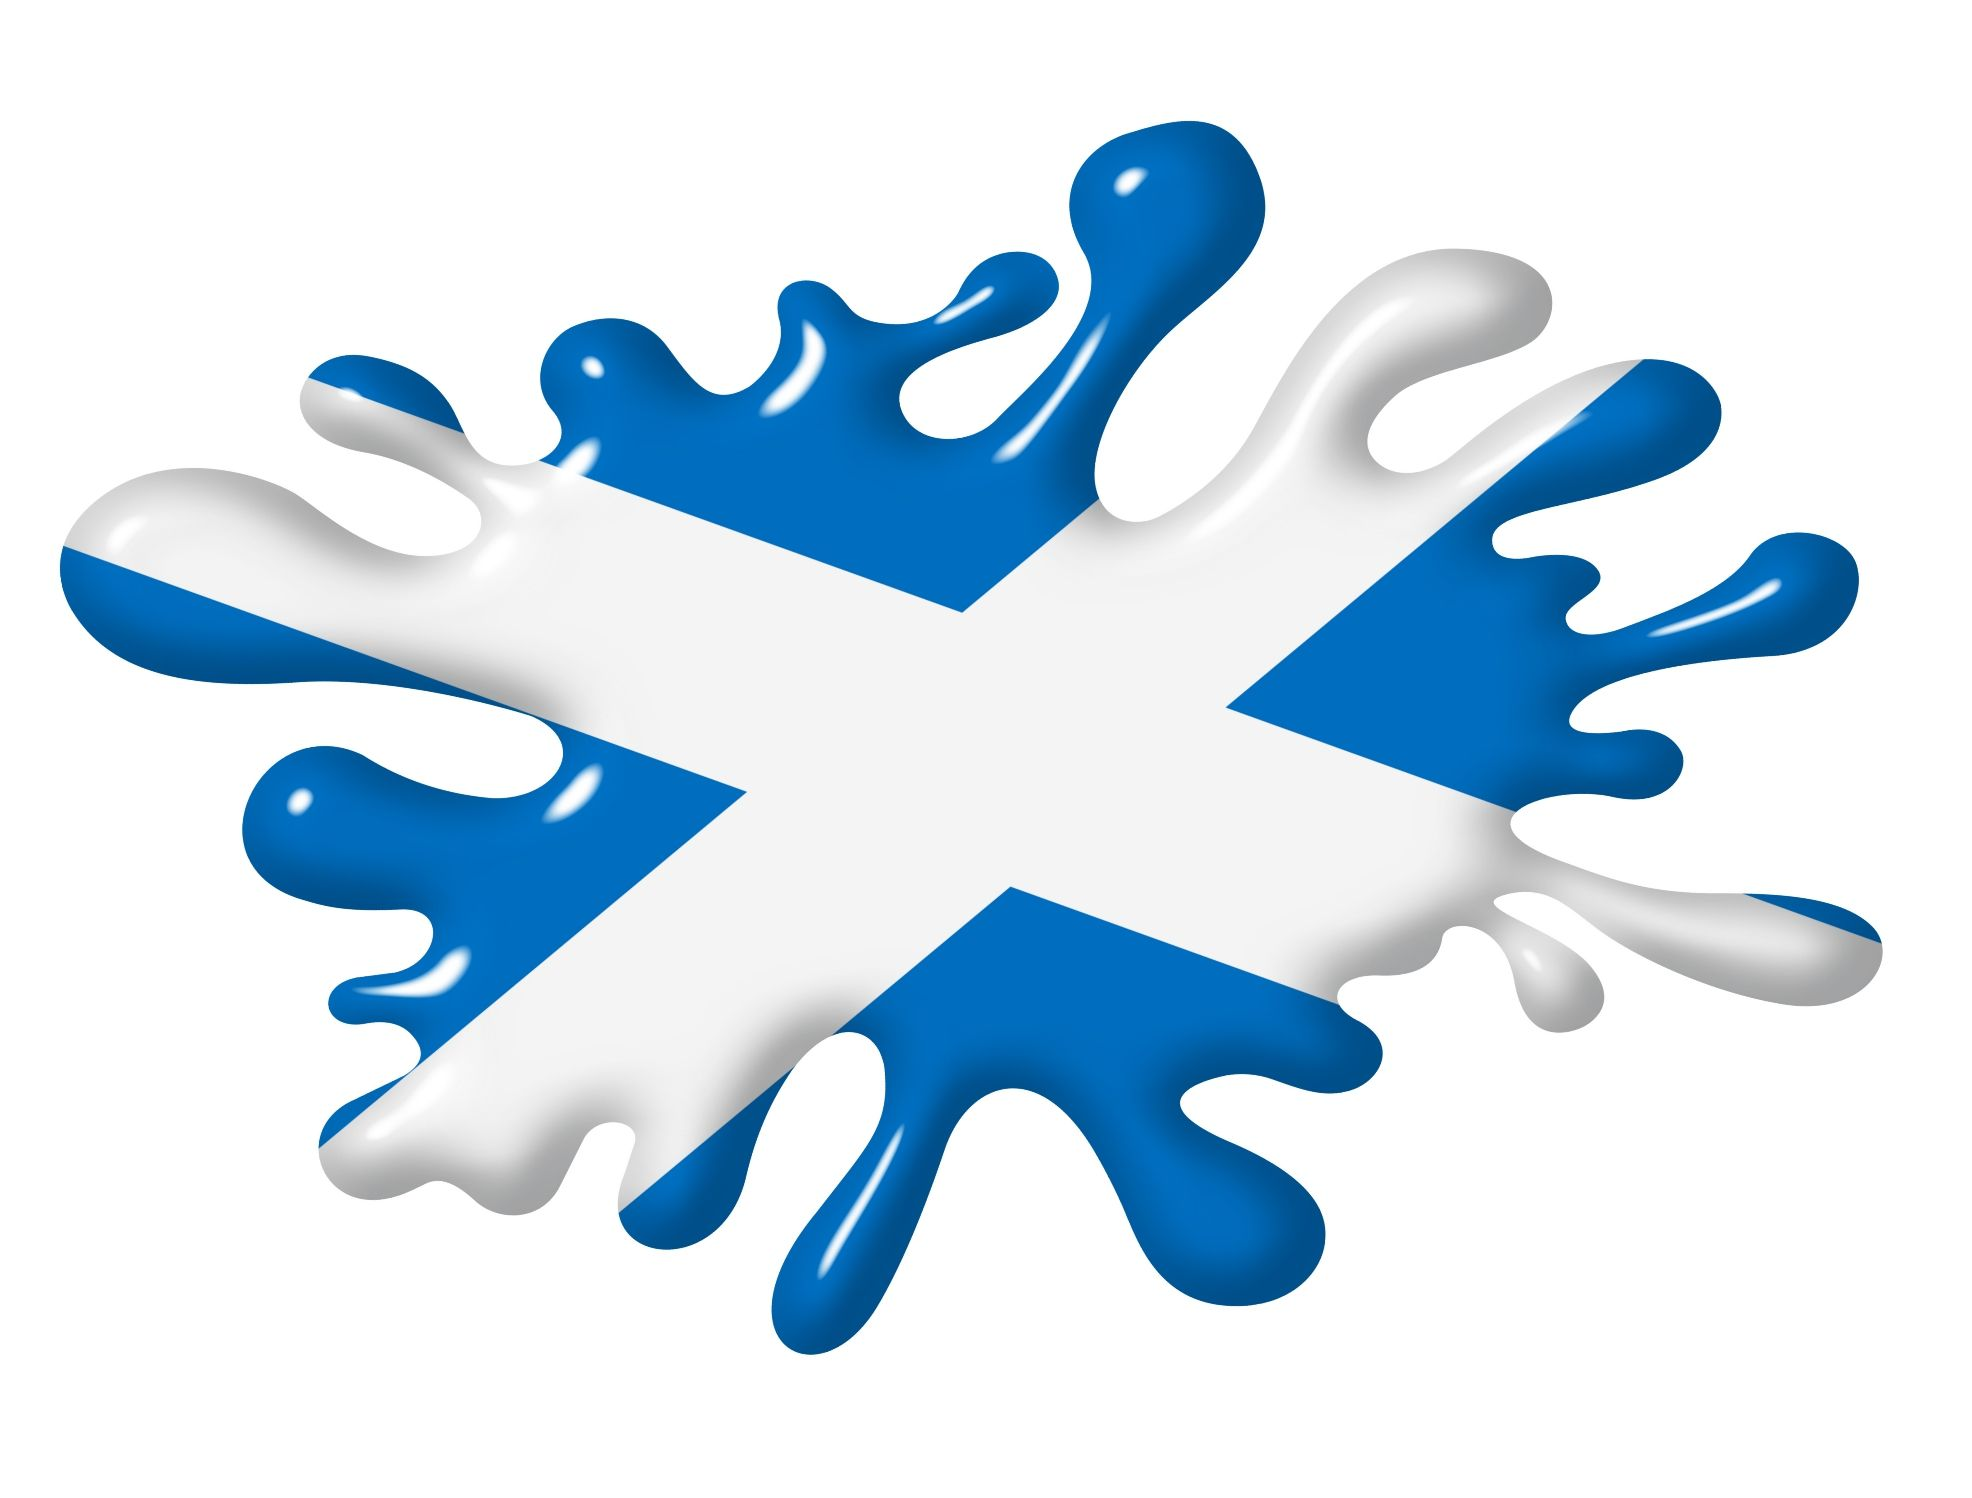 3d Shaded Effect Splat Design With Scotland Scottish